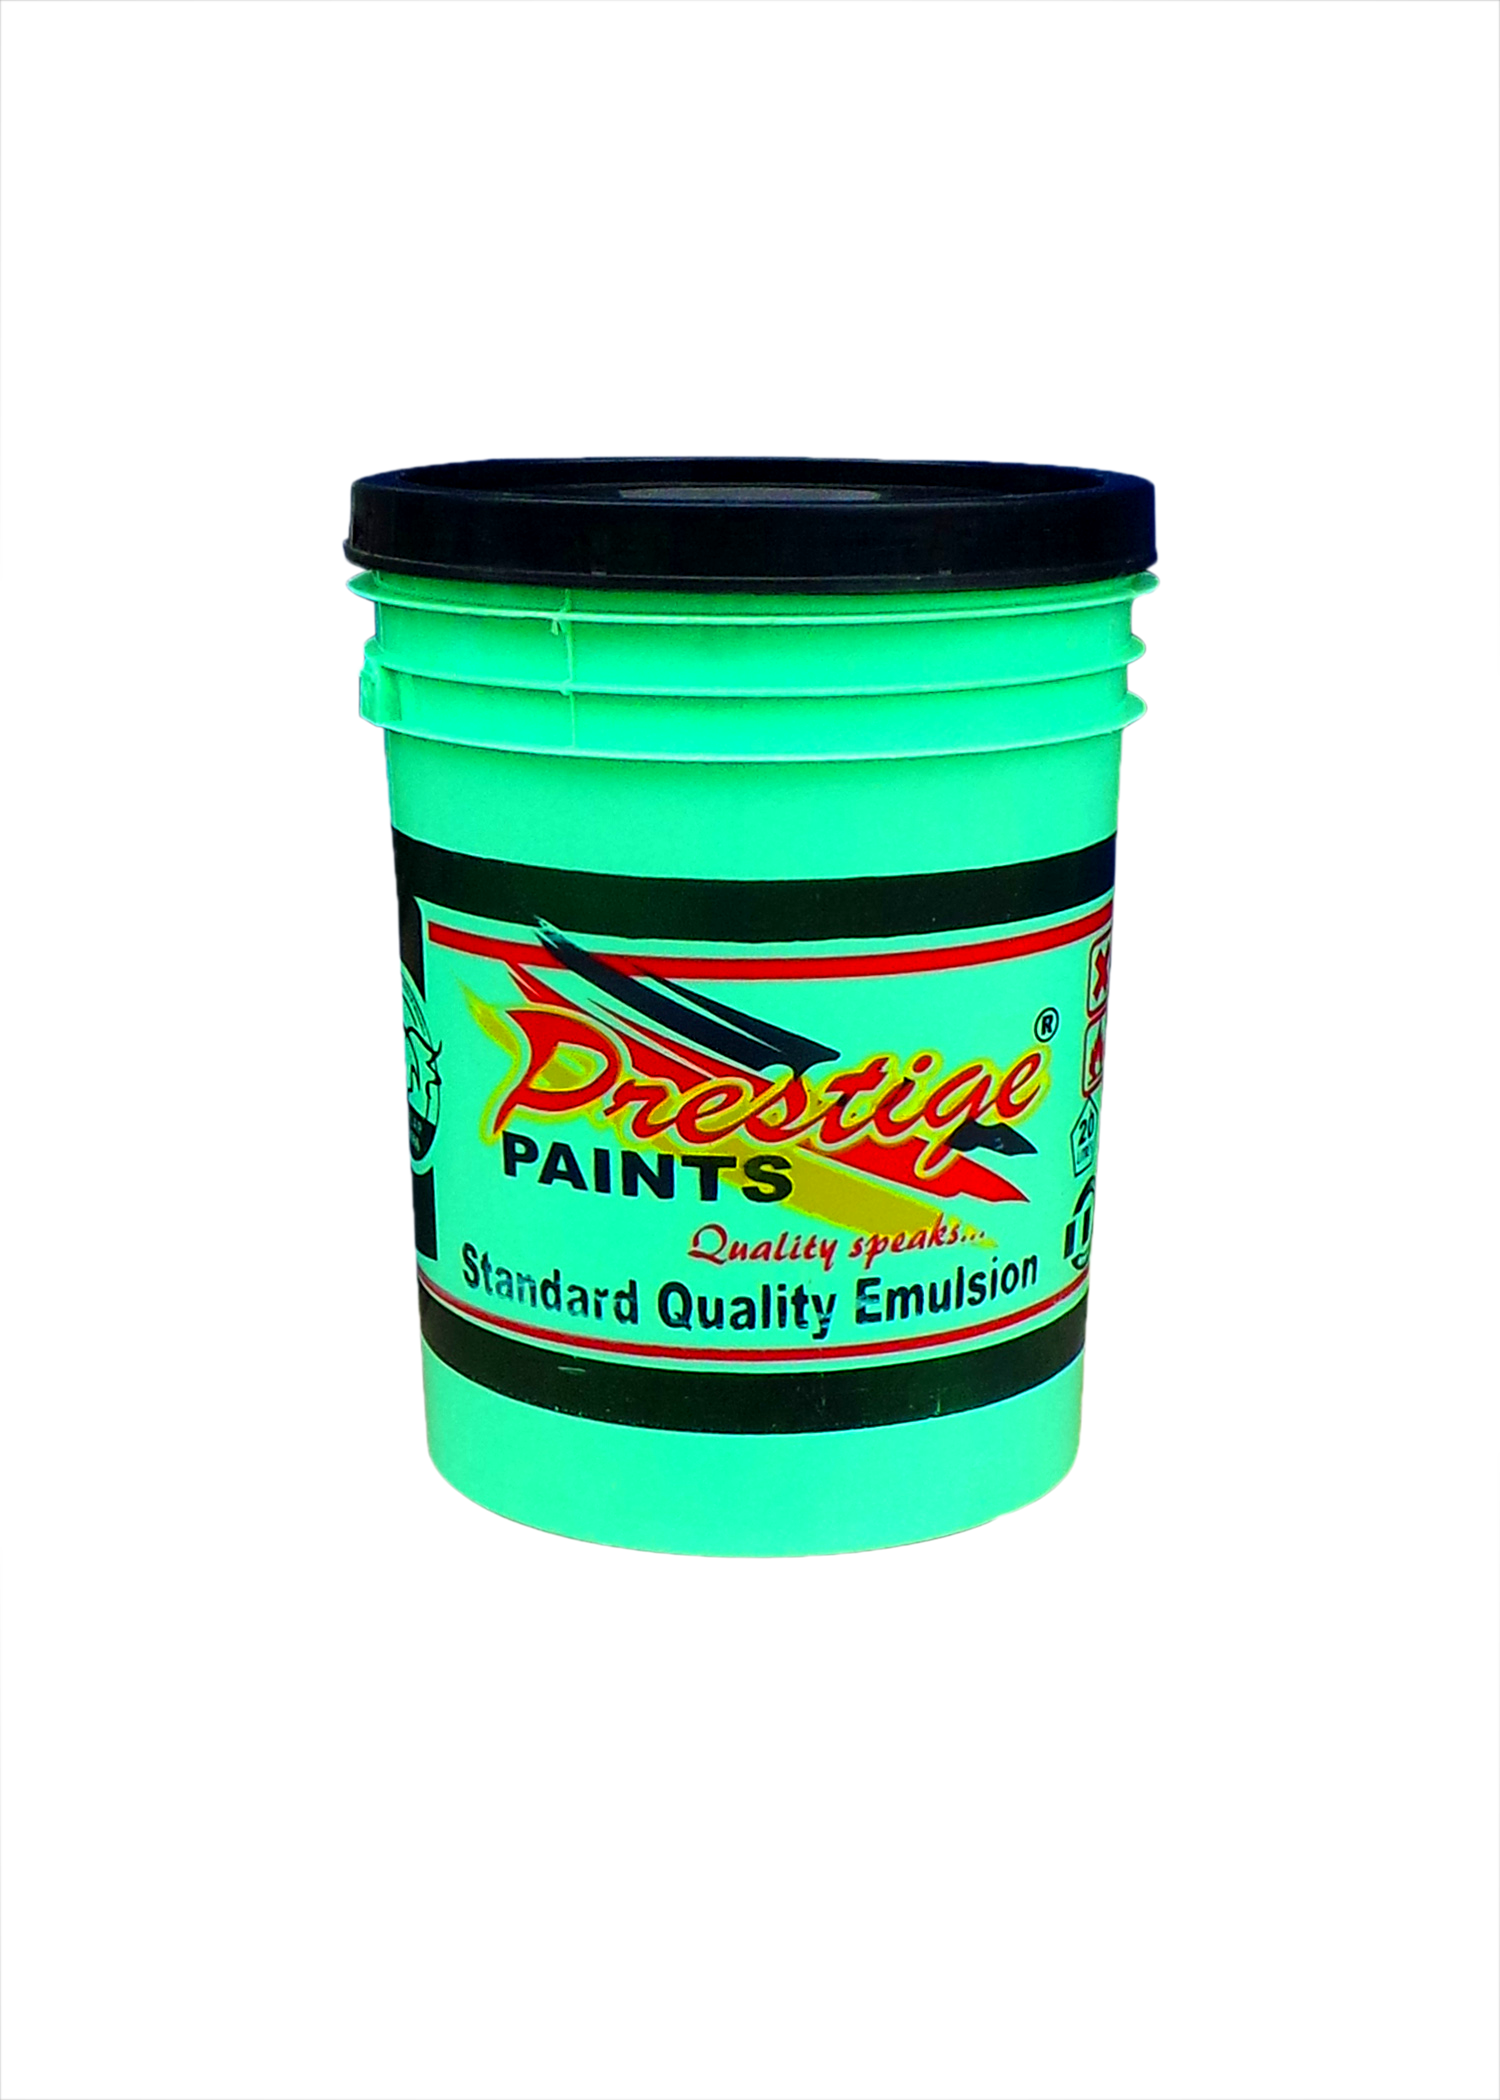 Prestige paint containers